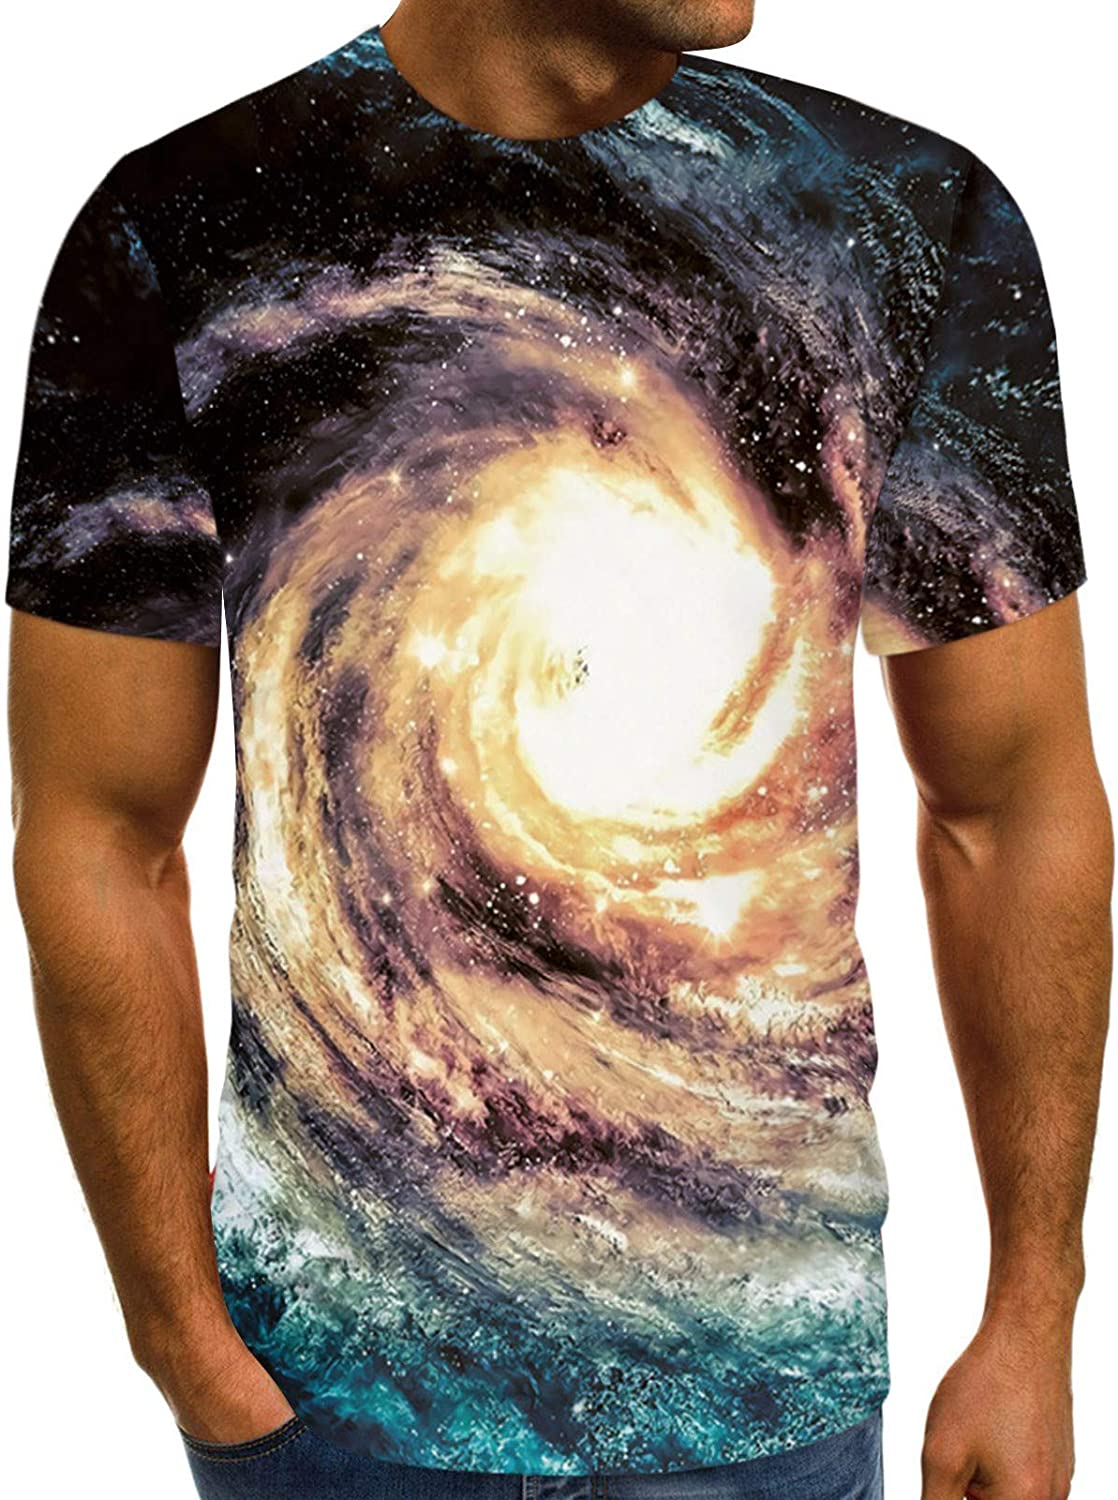 3D Graphic Men Women Outlet sale Price reduction feature Short T-Shirt Ro Sleeve Lightweight Printed